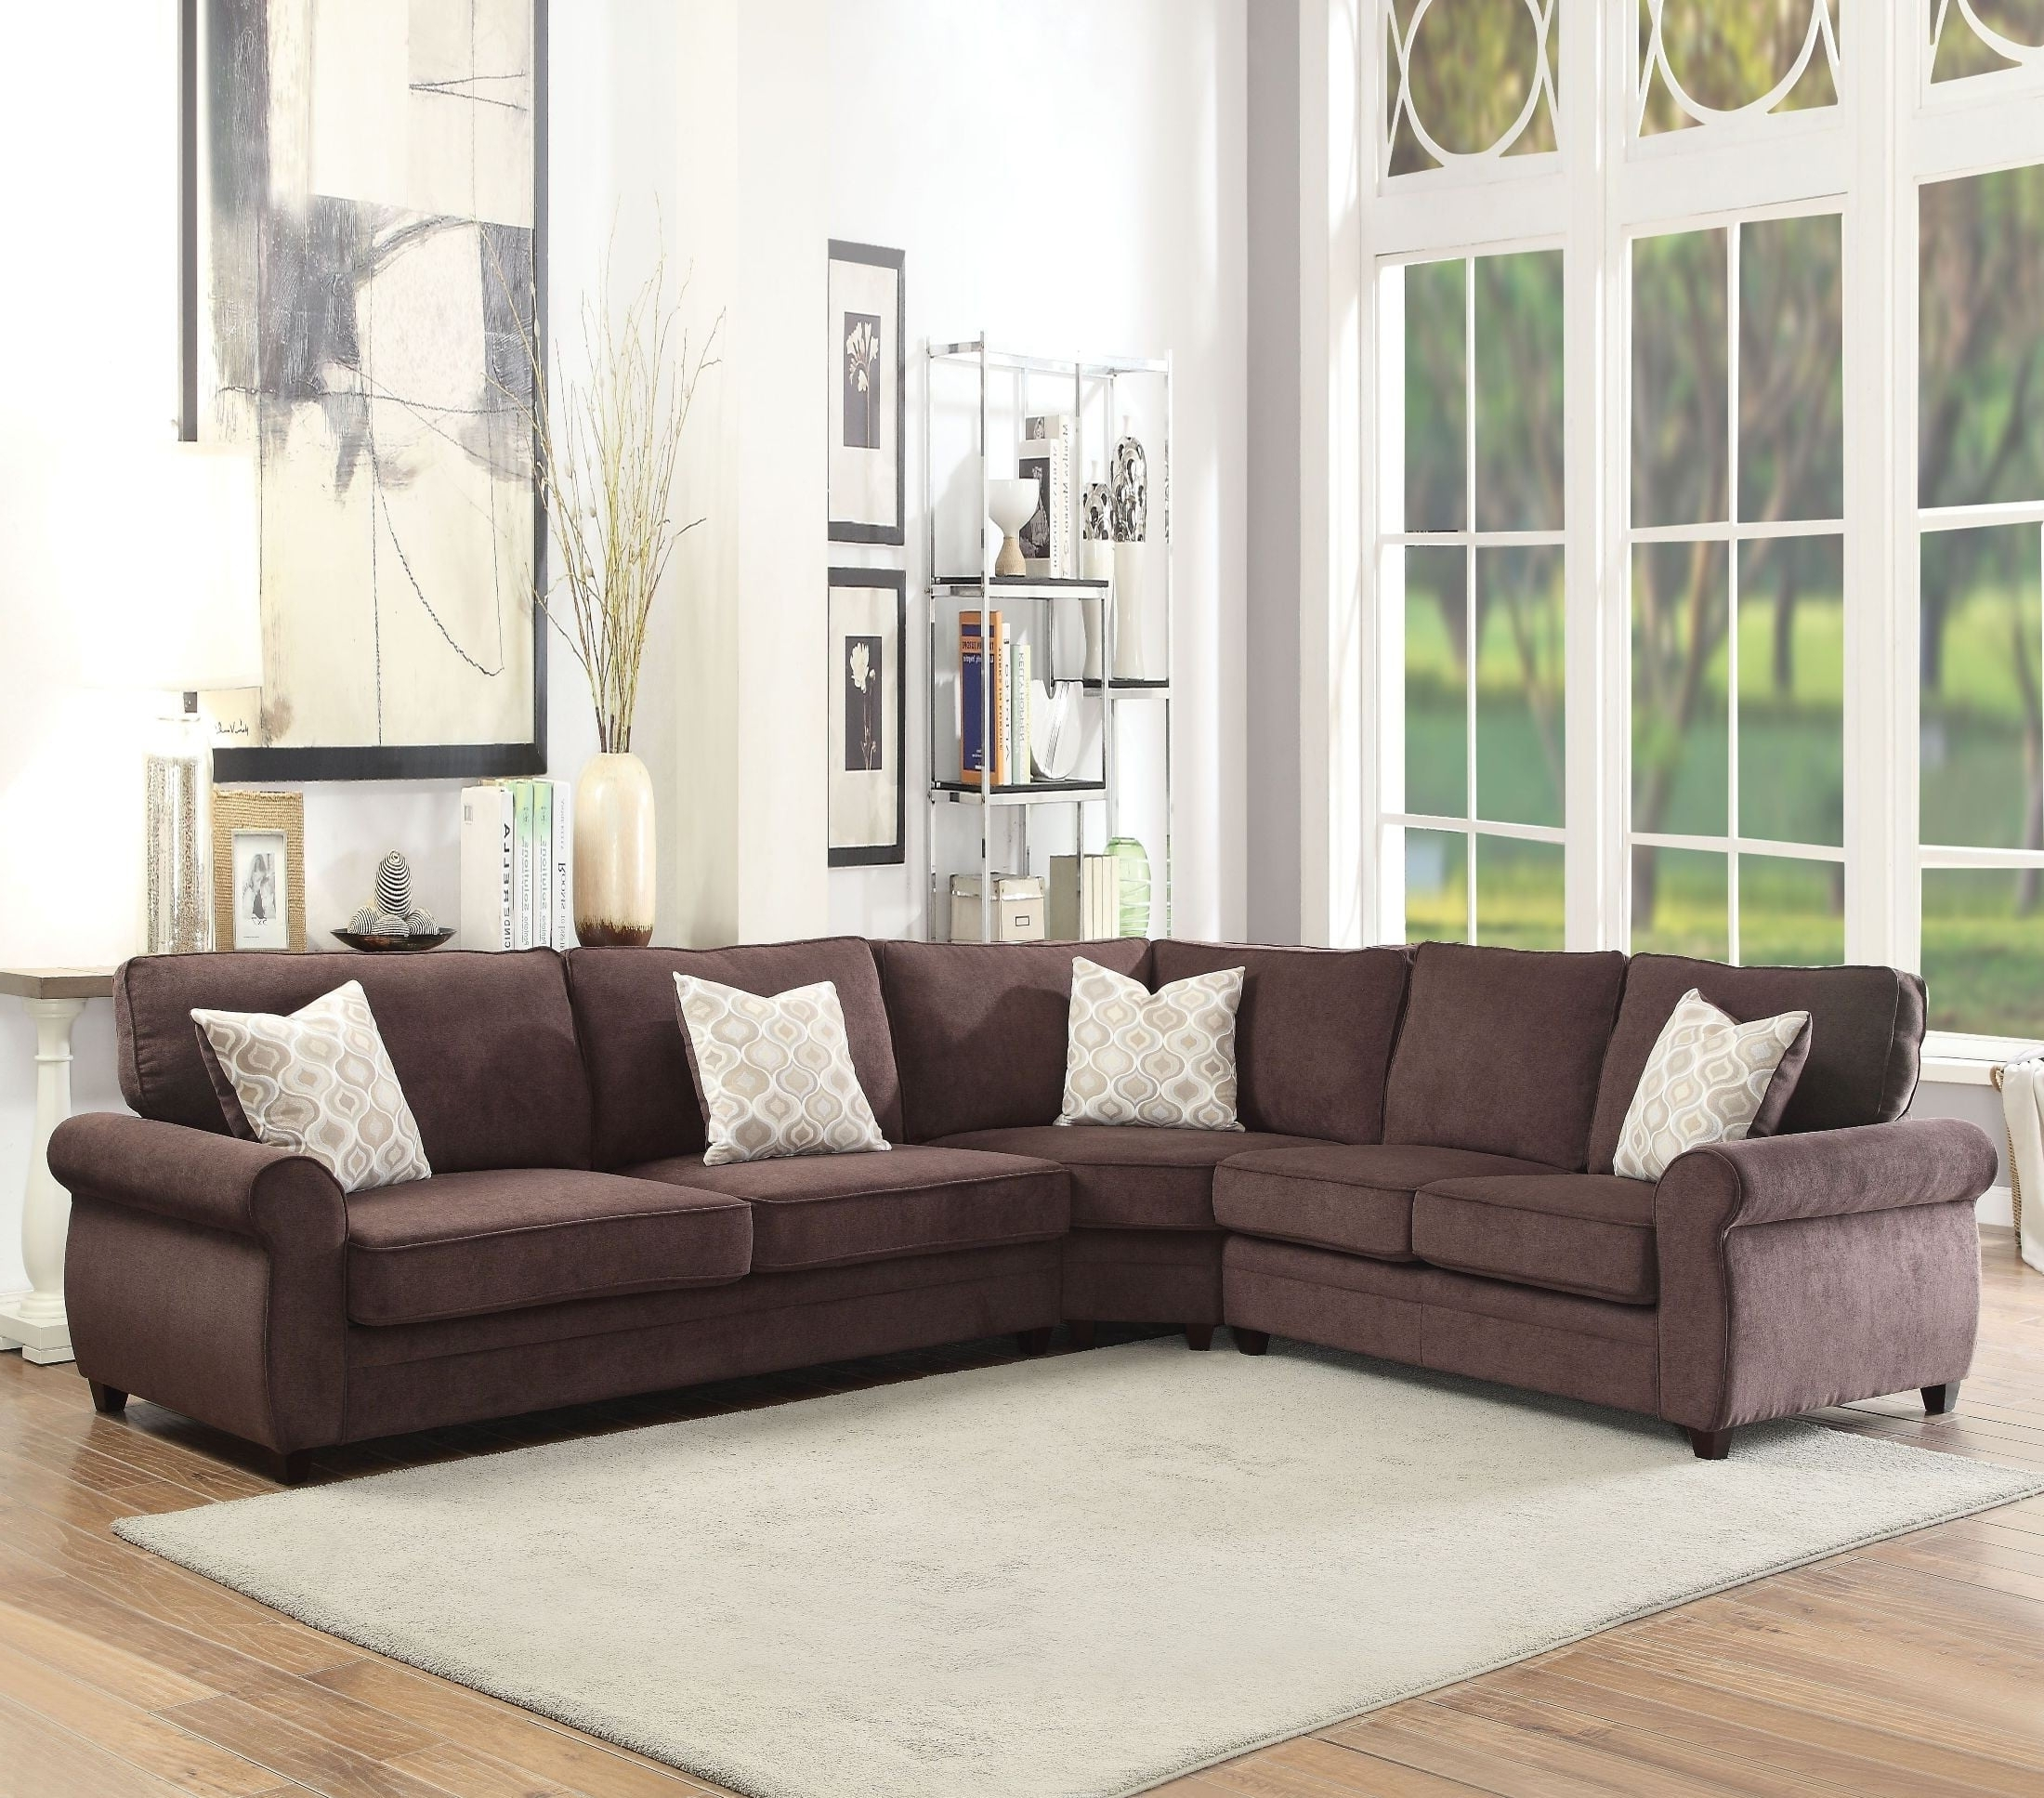 Sectional Sofas At Barrie Regarding Favorite Randolph Chocolate Chenille Sectional Sofa Sleeper From Acme (View 11 of 15)